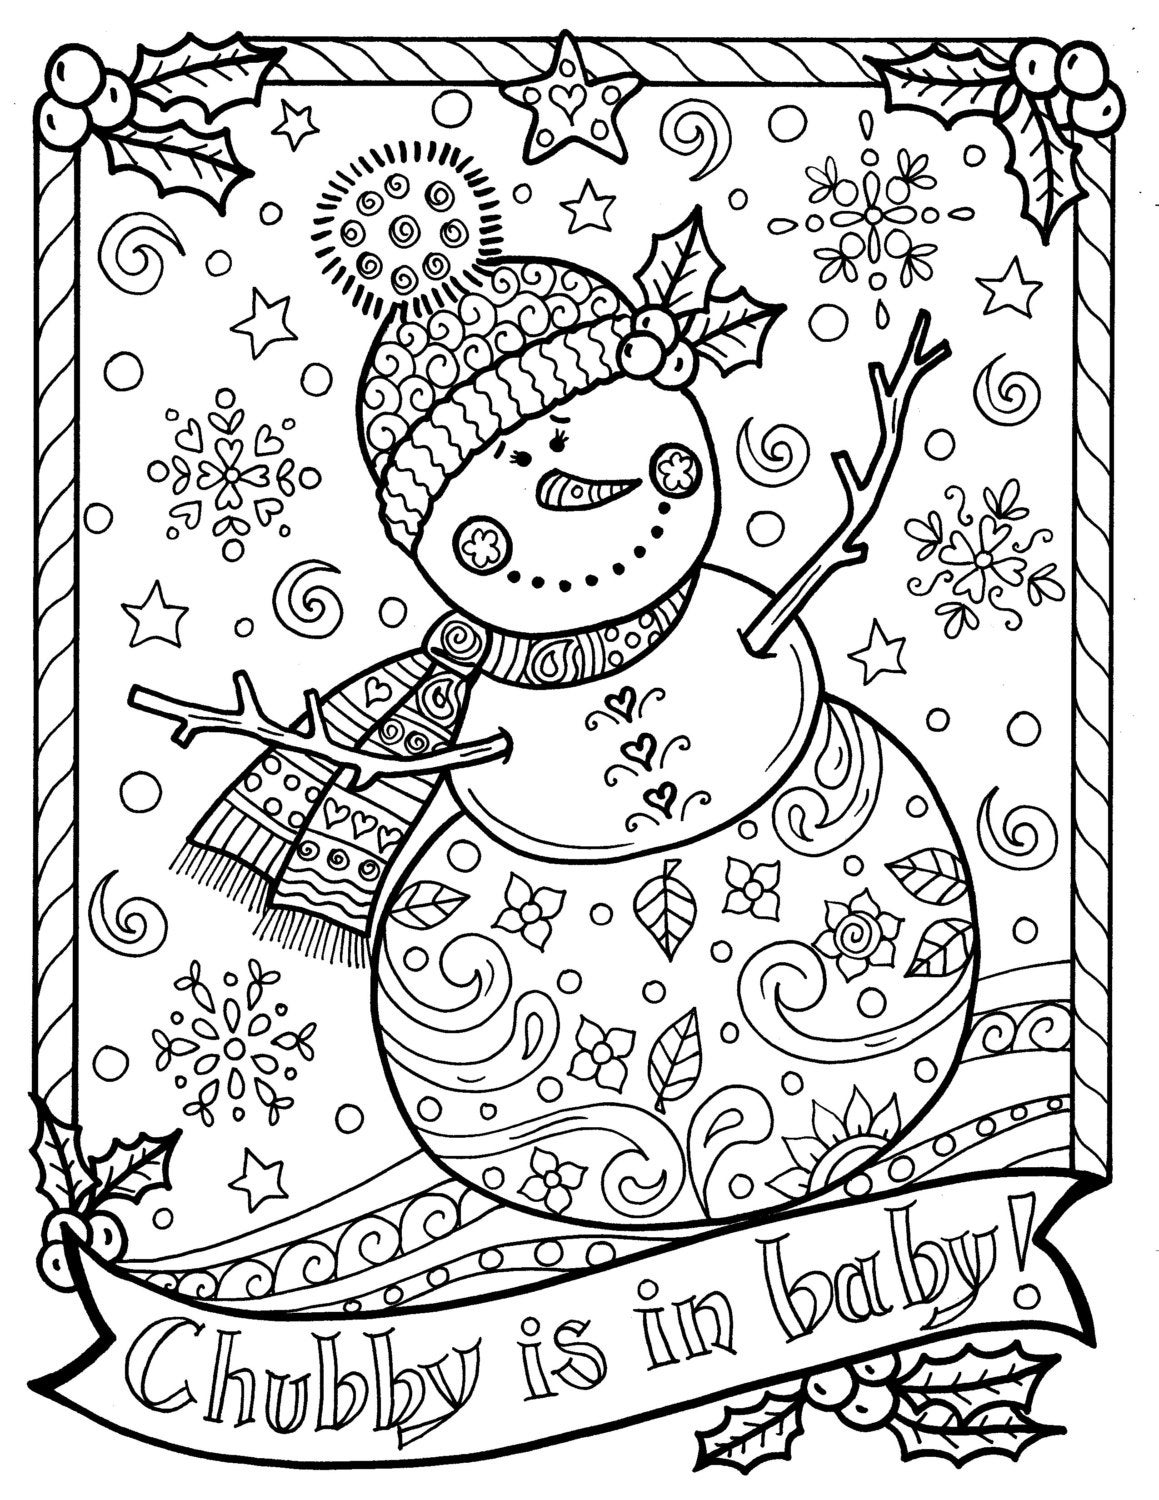 Snowman Coloring page Chubby Christmas Adult Color ...